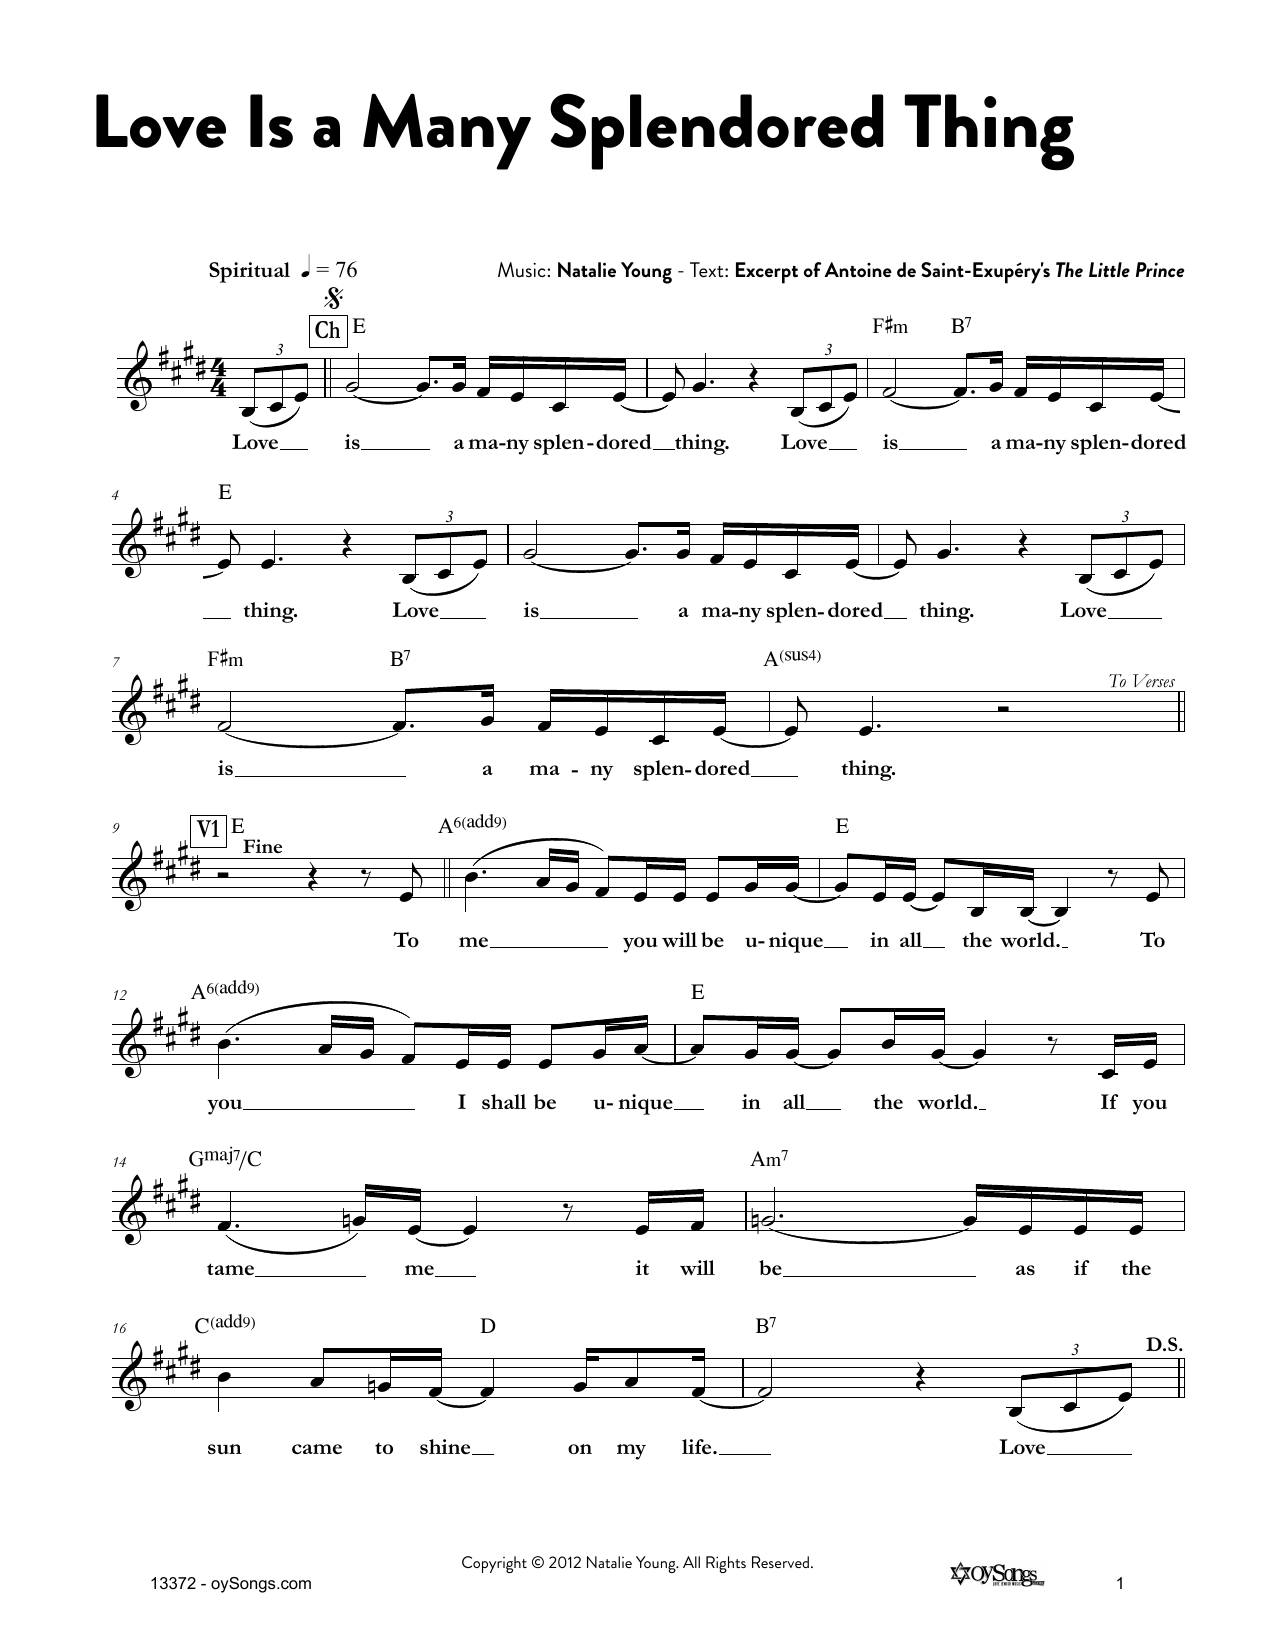 Love Is a Many Splendored Thing Sheet Music